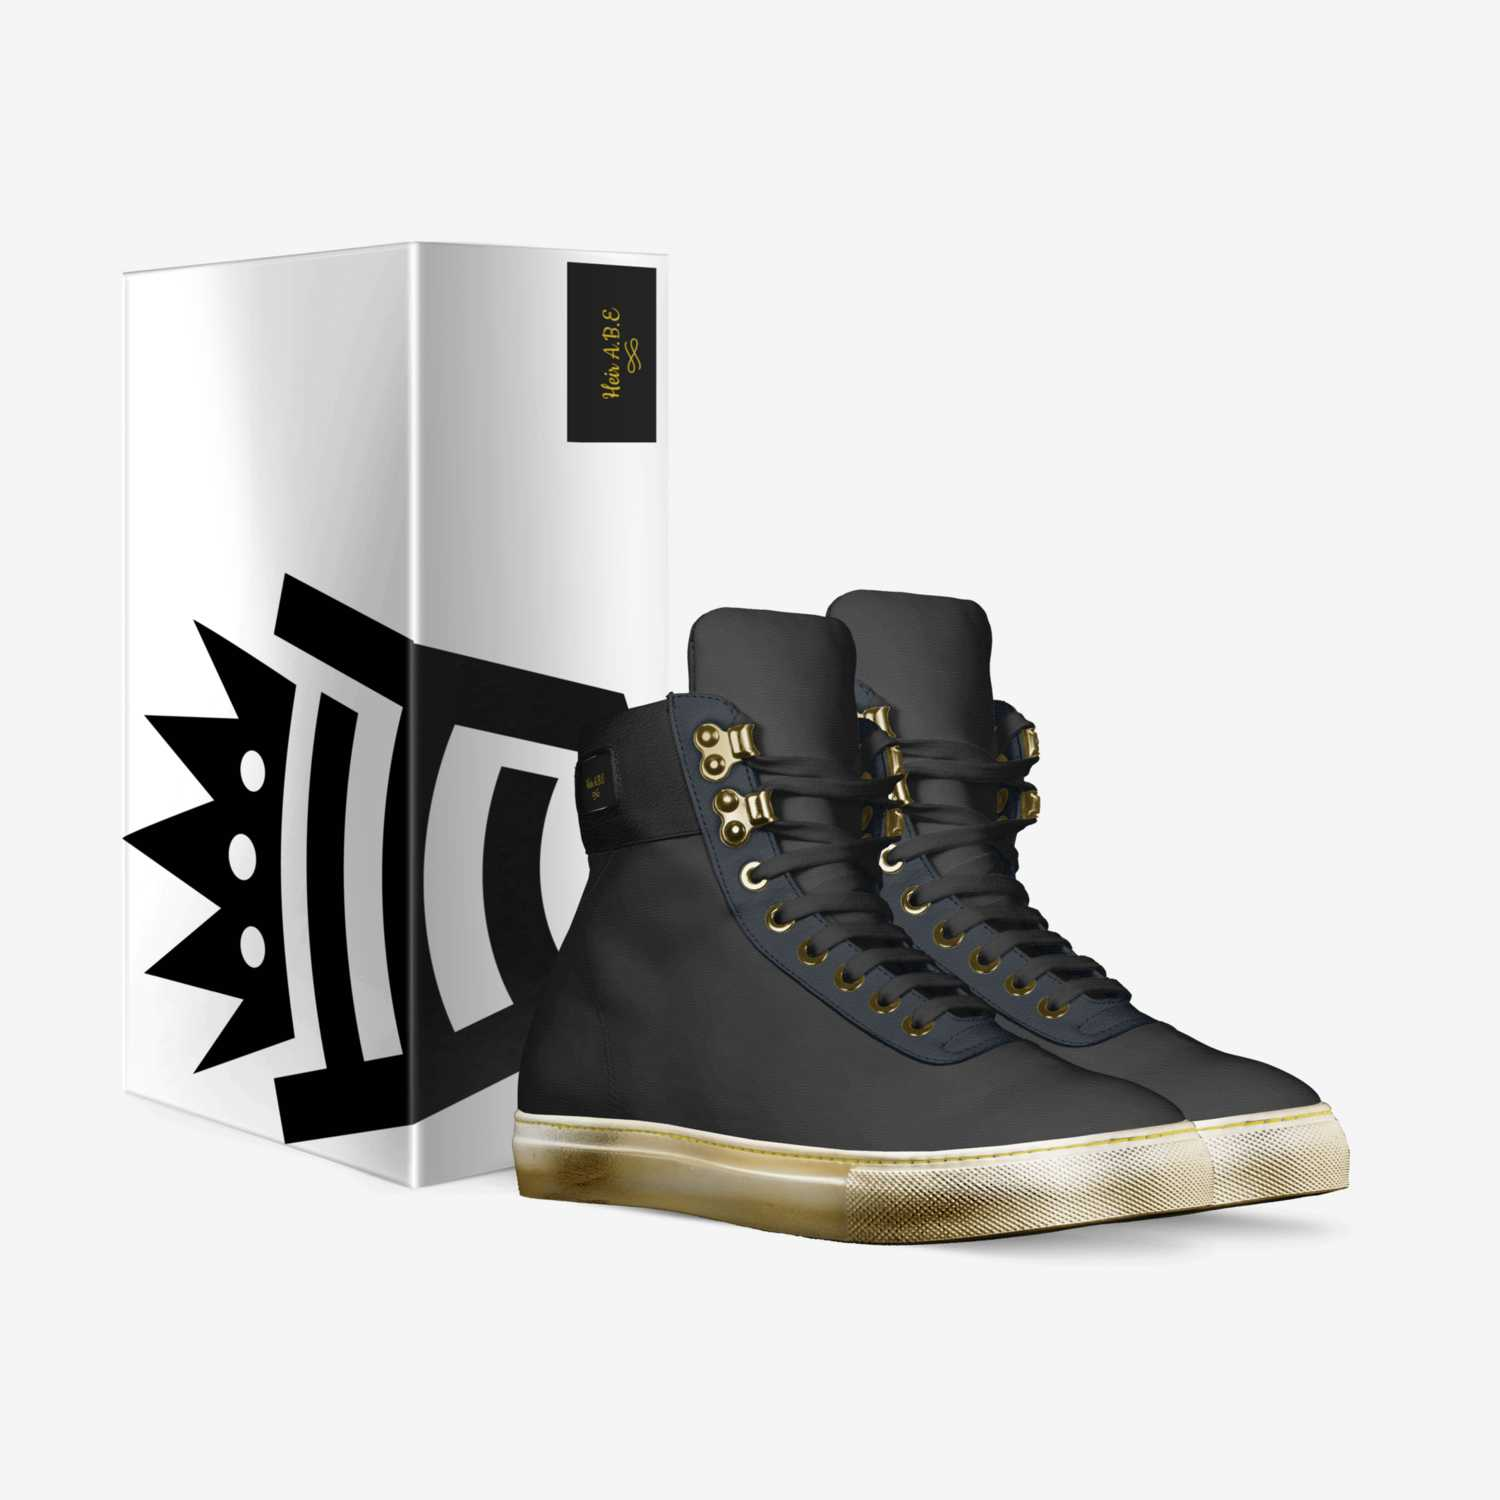 Heir A.B.E custom made in Italy shoes by Wheezy Cage | Box view